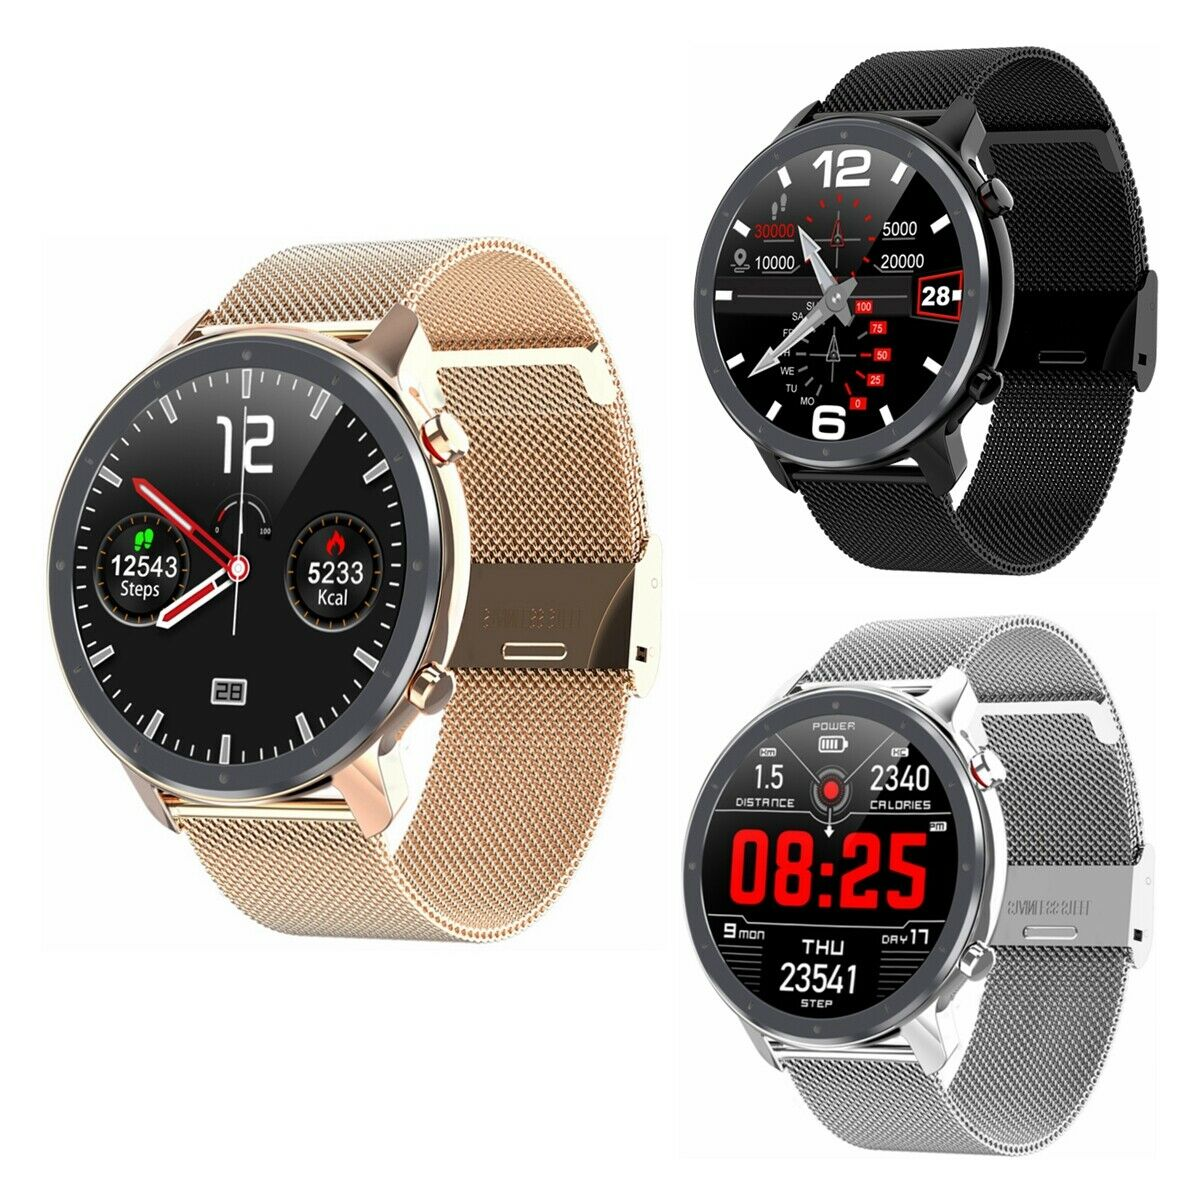 Microwear L11 PPG ECG Waterproof IP68 Blood Pressure Oxygen Monitor Smart Watch blood ecg Featured ip68 l11 microwear monitor oxygen ppg pressure waterproof